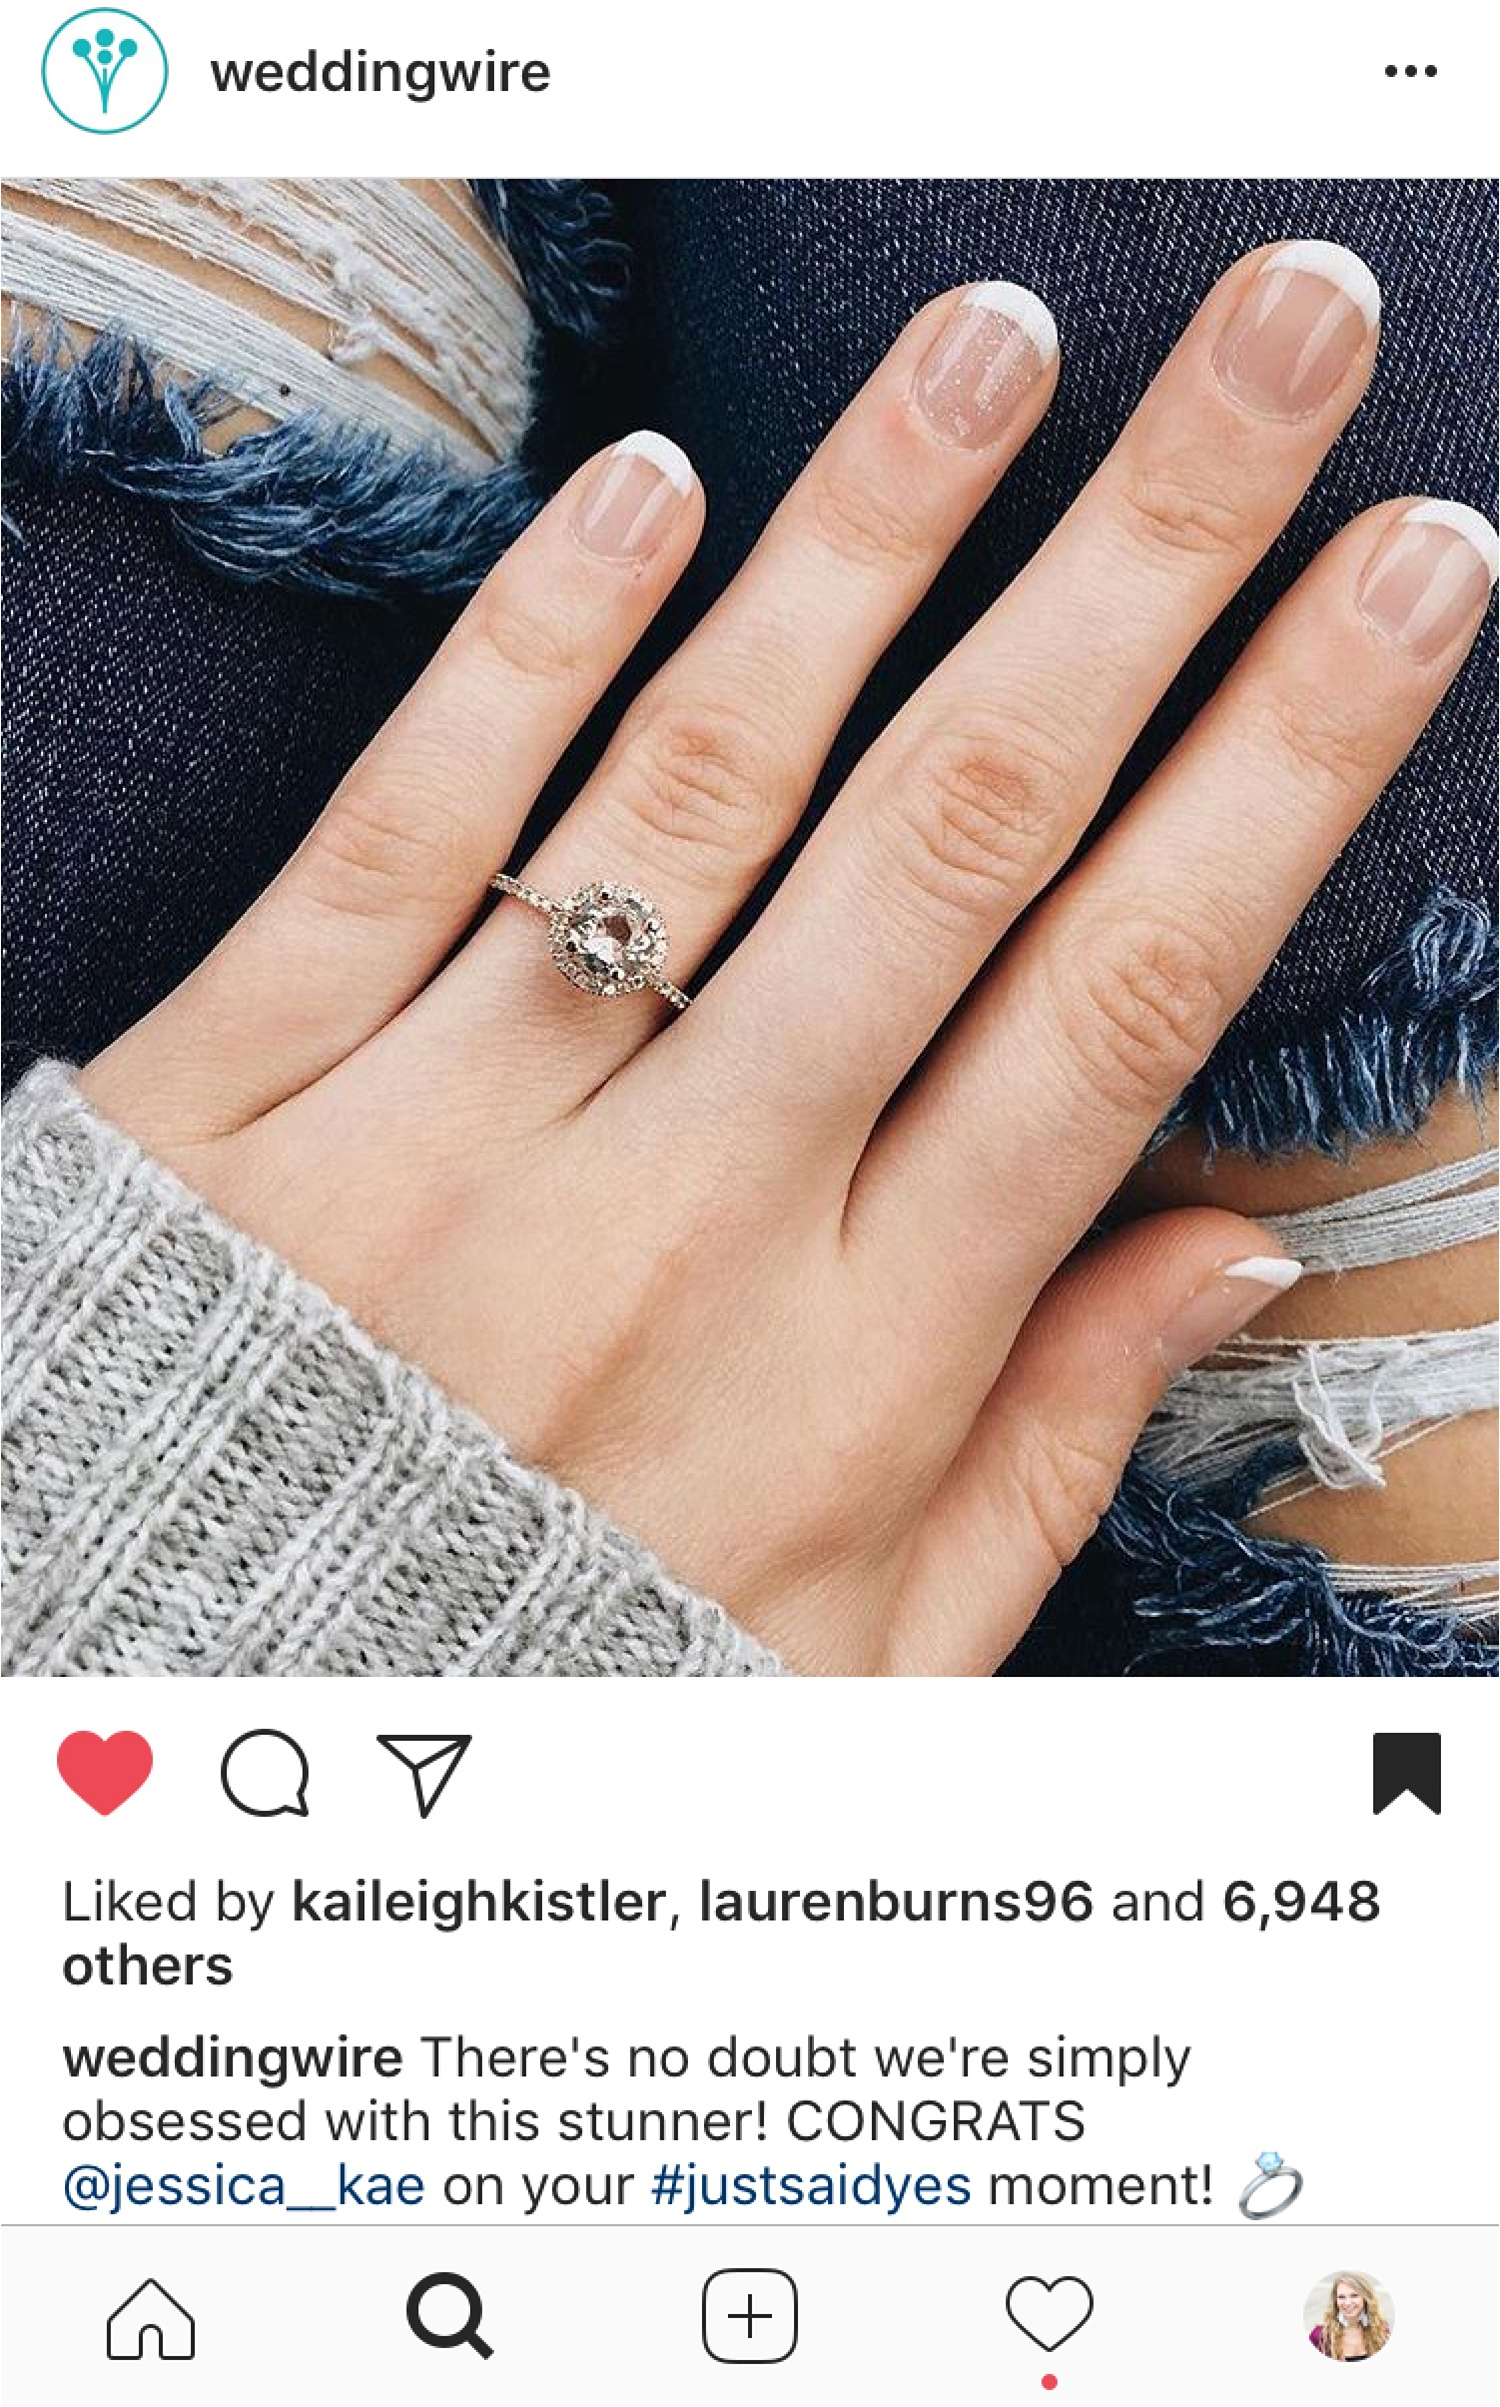 My ring even got featured on  Wedding Wire ! This was such a fun surprise.